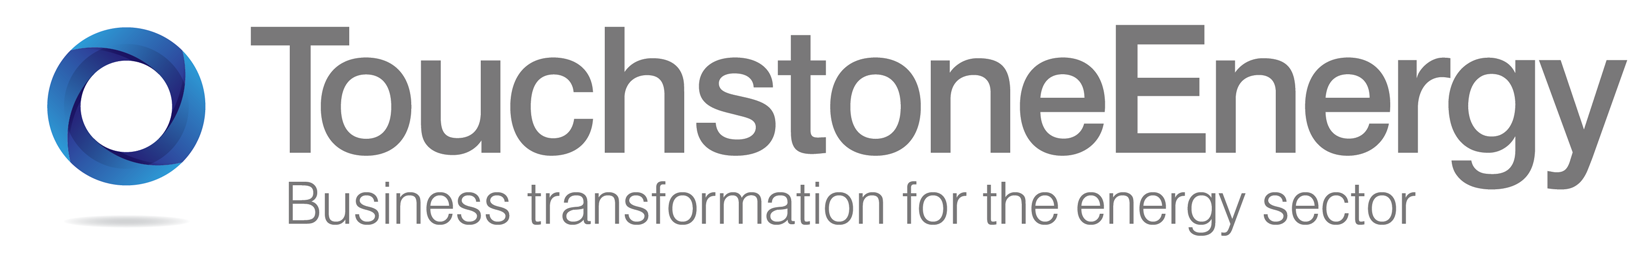 touchstoneenergy Logo